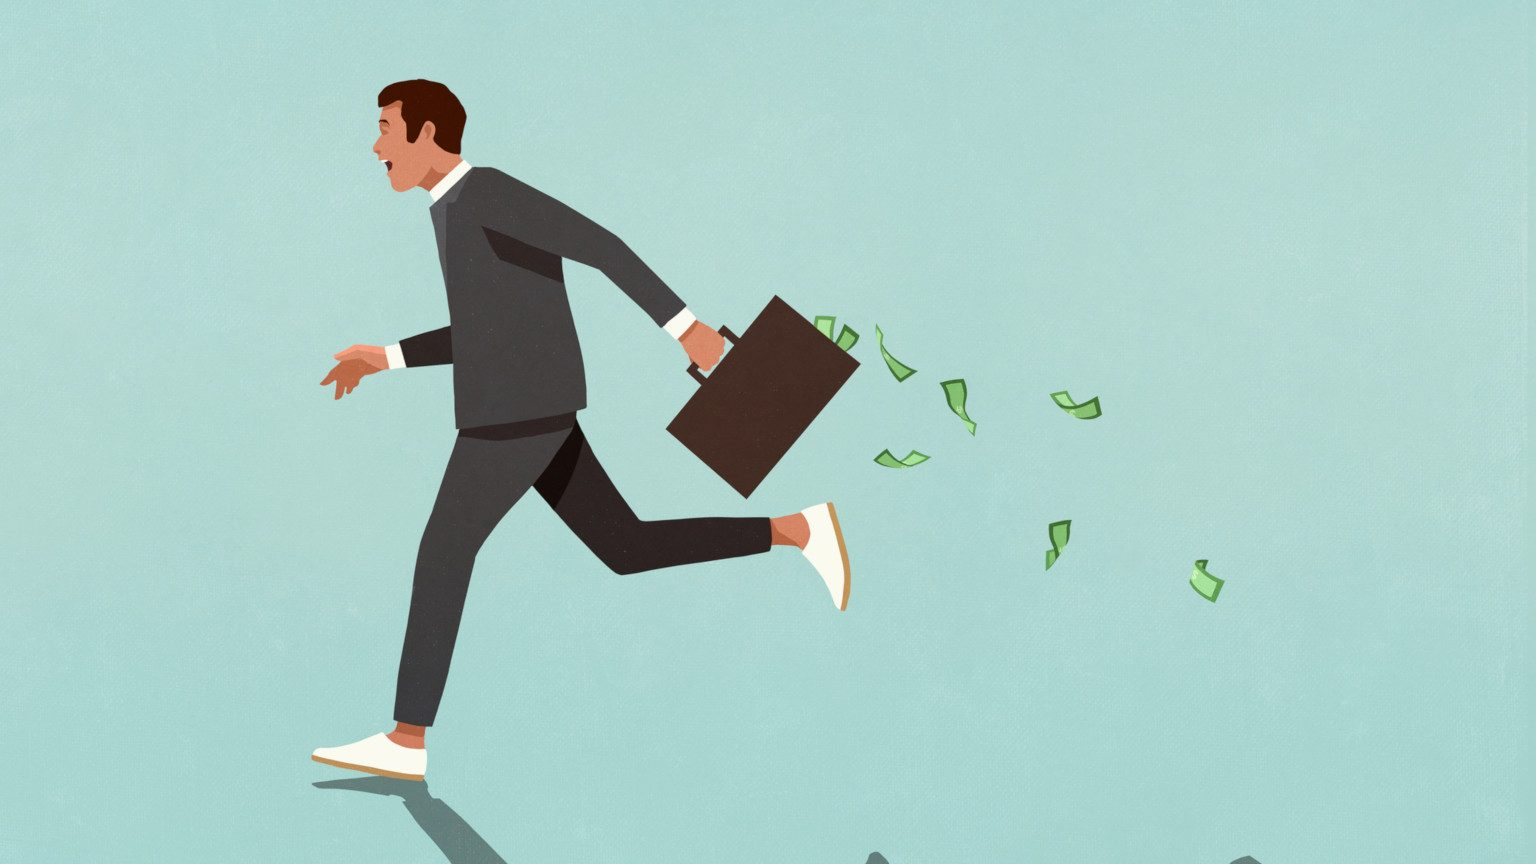 A cartoon of a business man running away with a briefcase full of money